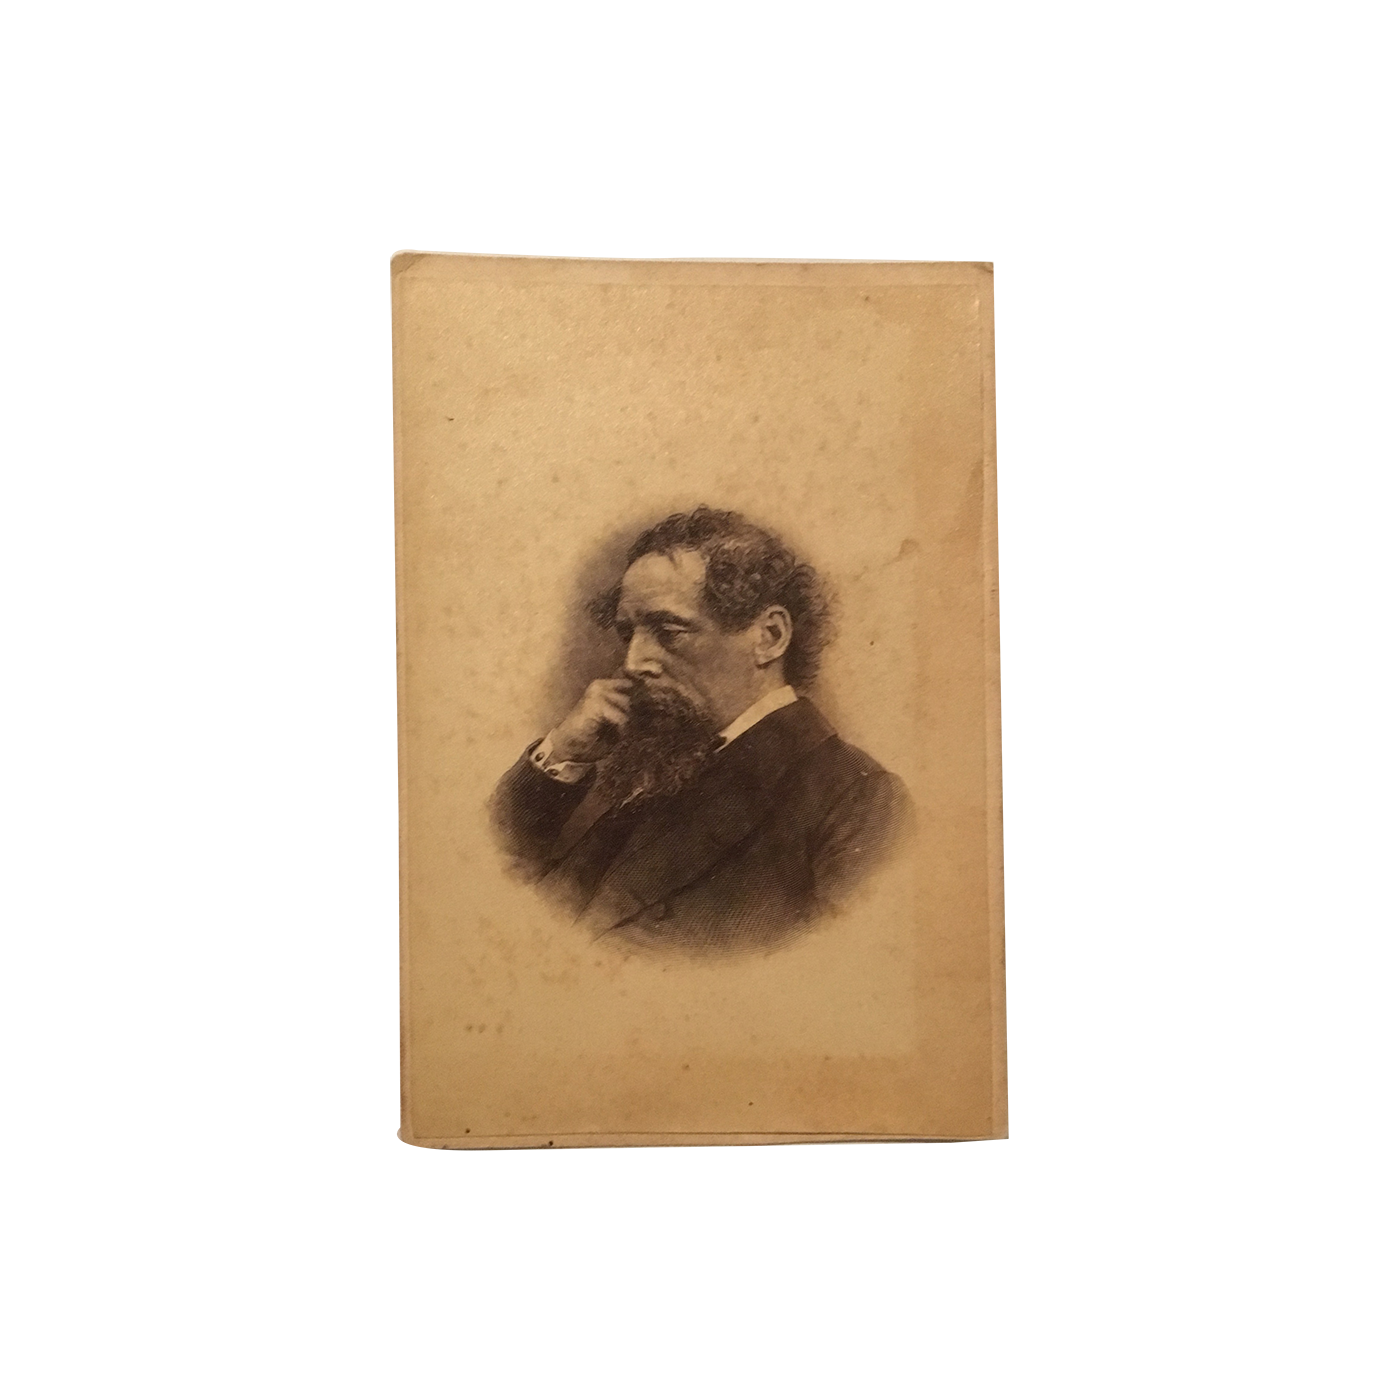 Charles Dickens Steel Engraving Based On A John Watkins 1836 1882 Carte De Visite Photograph From 1863